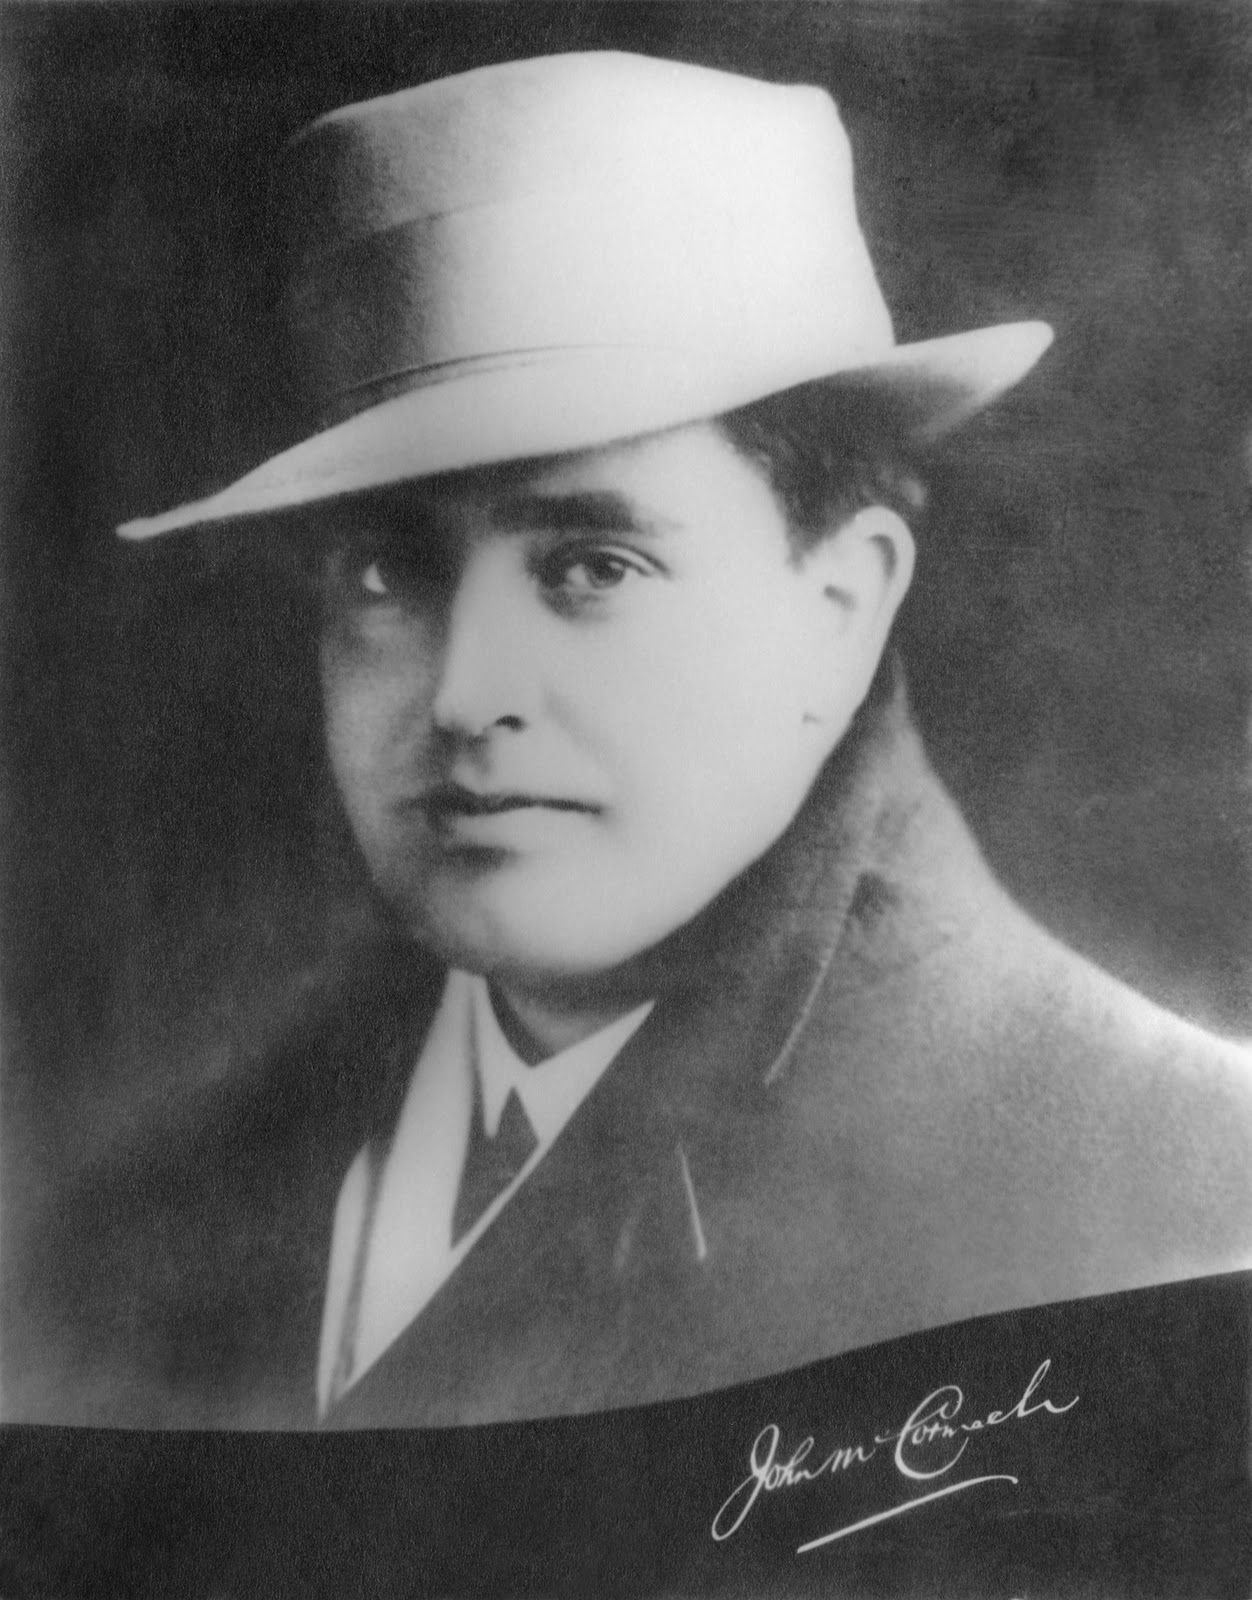 irish boston history heritage irish tenor john mccormack makes irish tenor john mccormack makes his debut at boston symphony hall 100 years ago